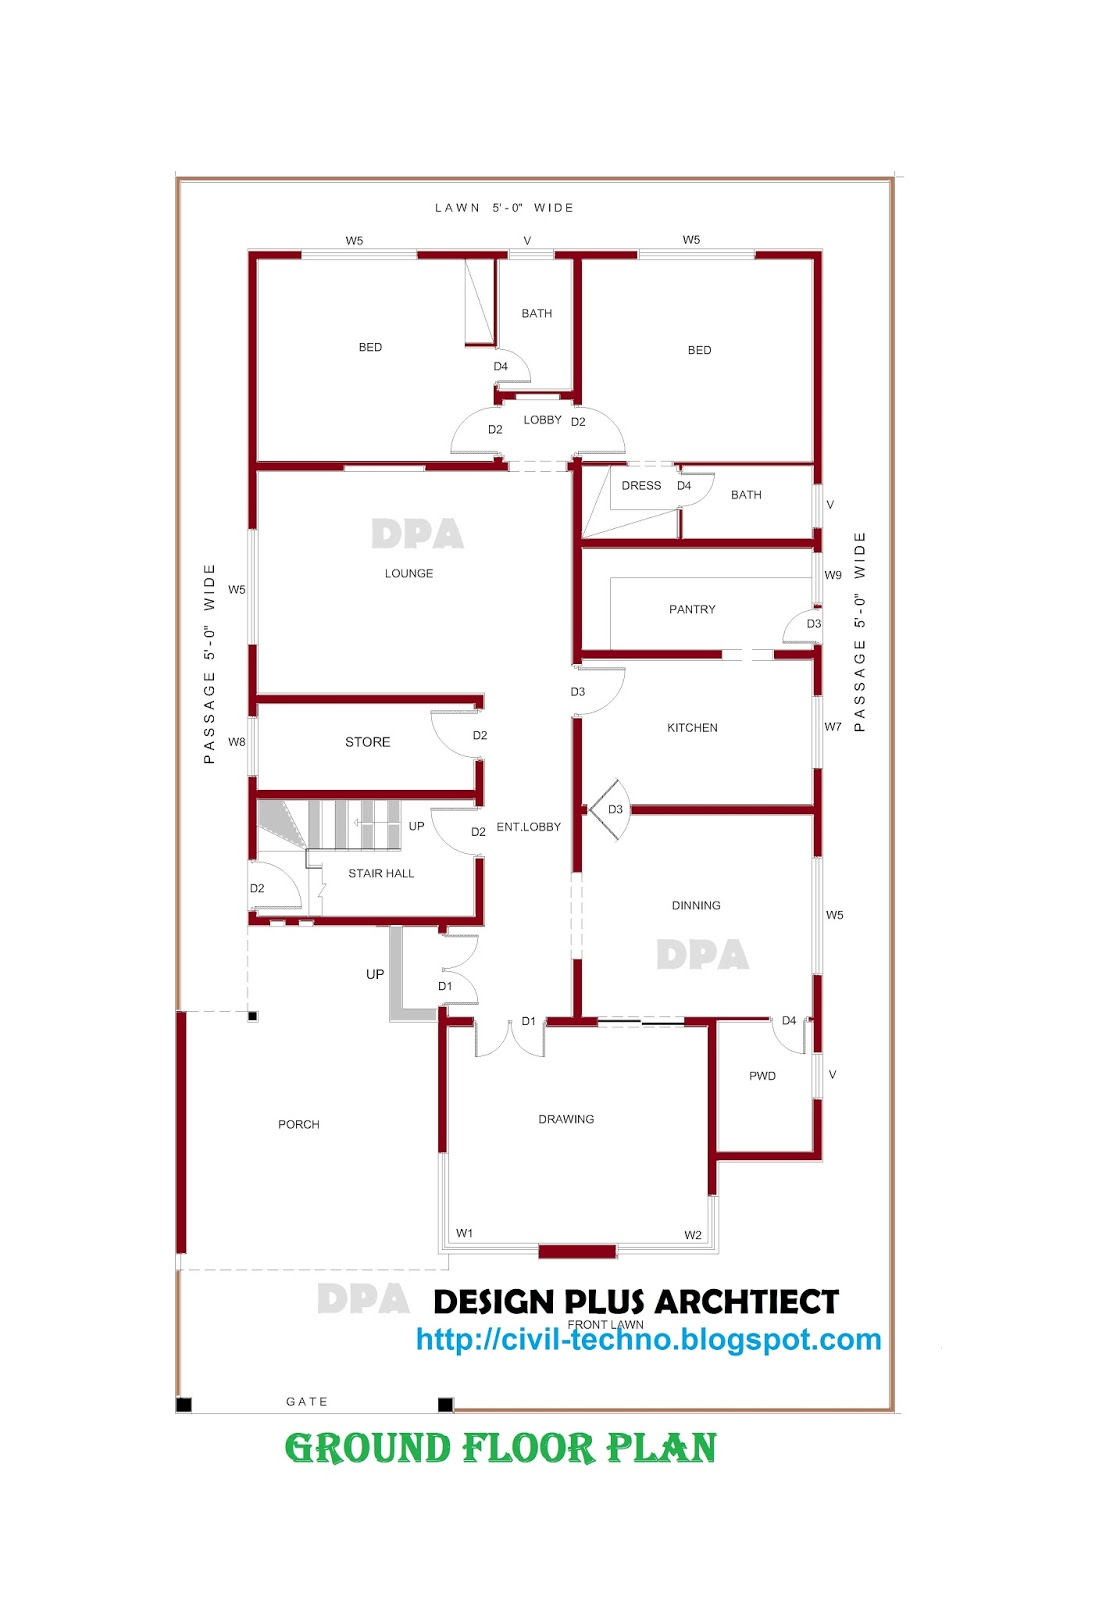 2d home design software gallery of autodesk home design d home marla house plan d house plans free software to design and with 2d home design software